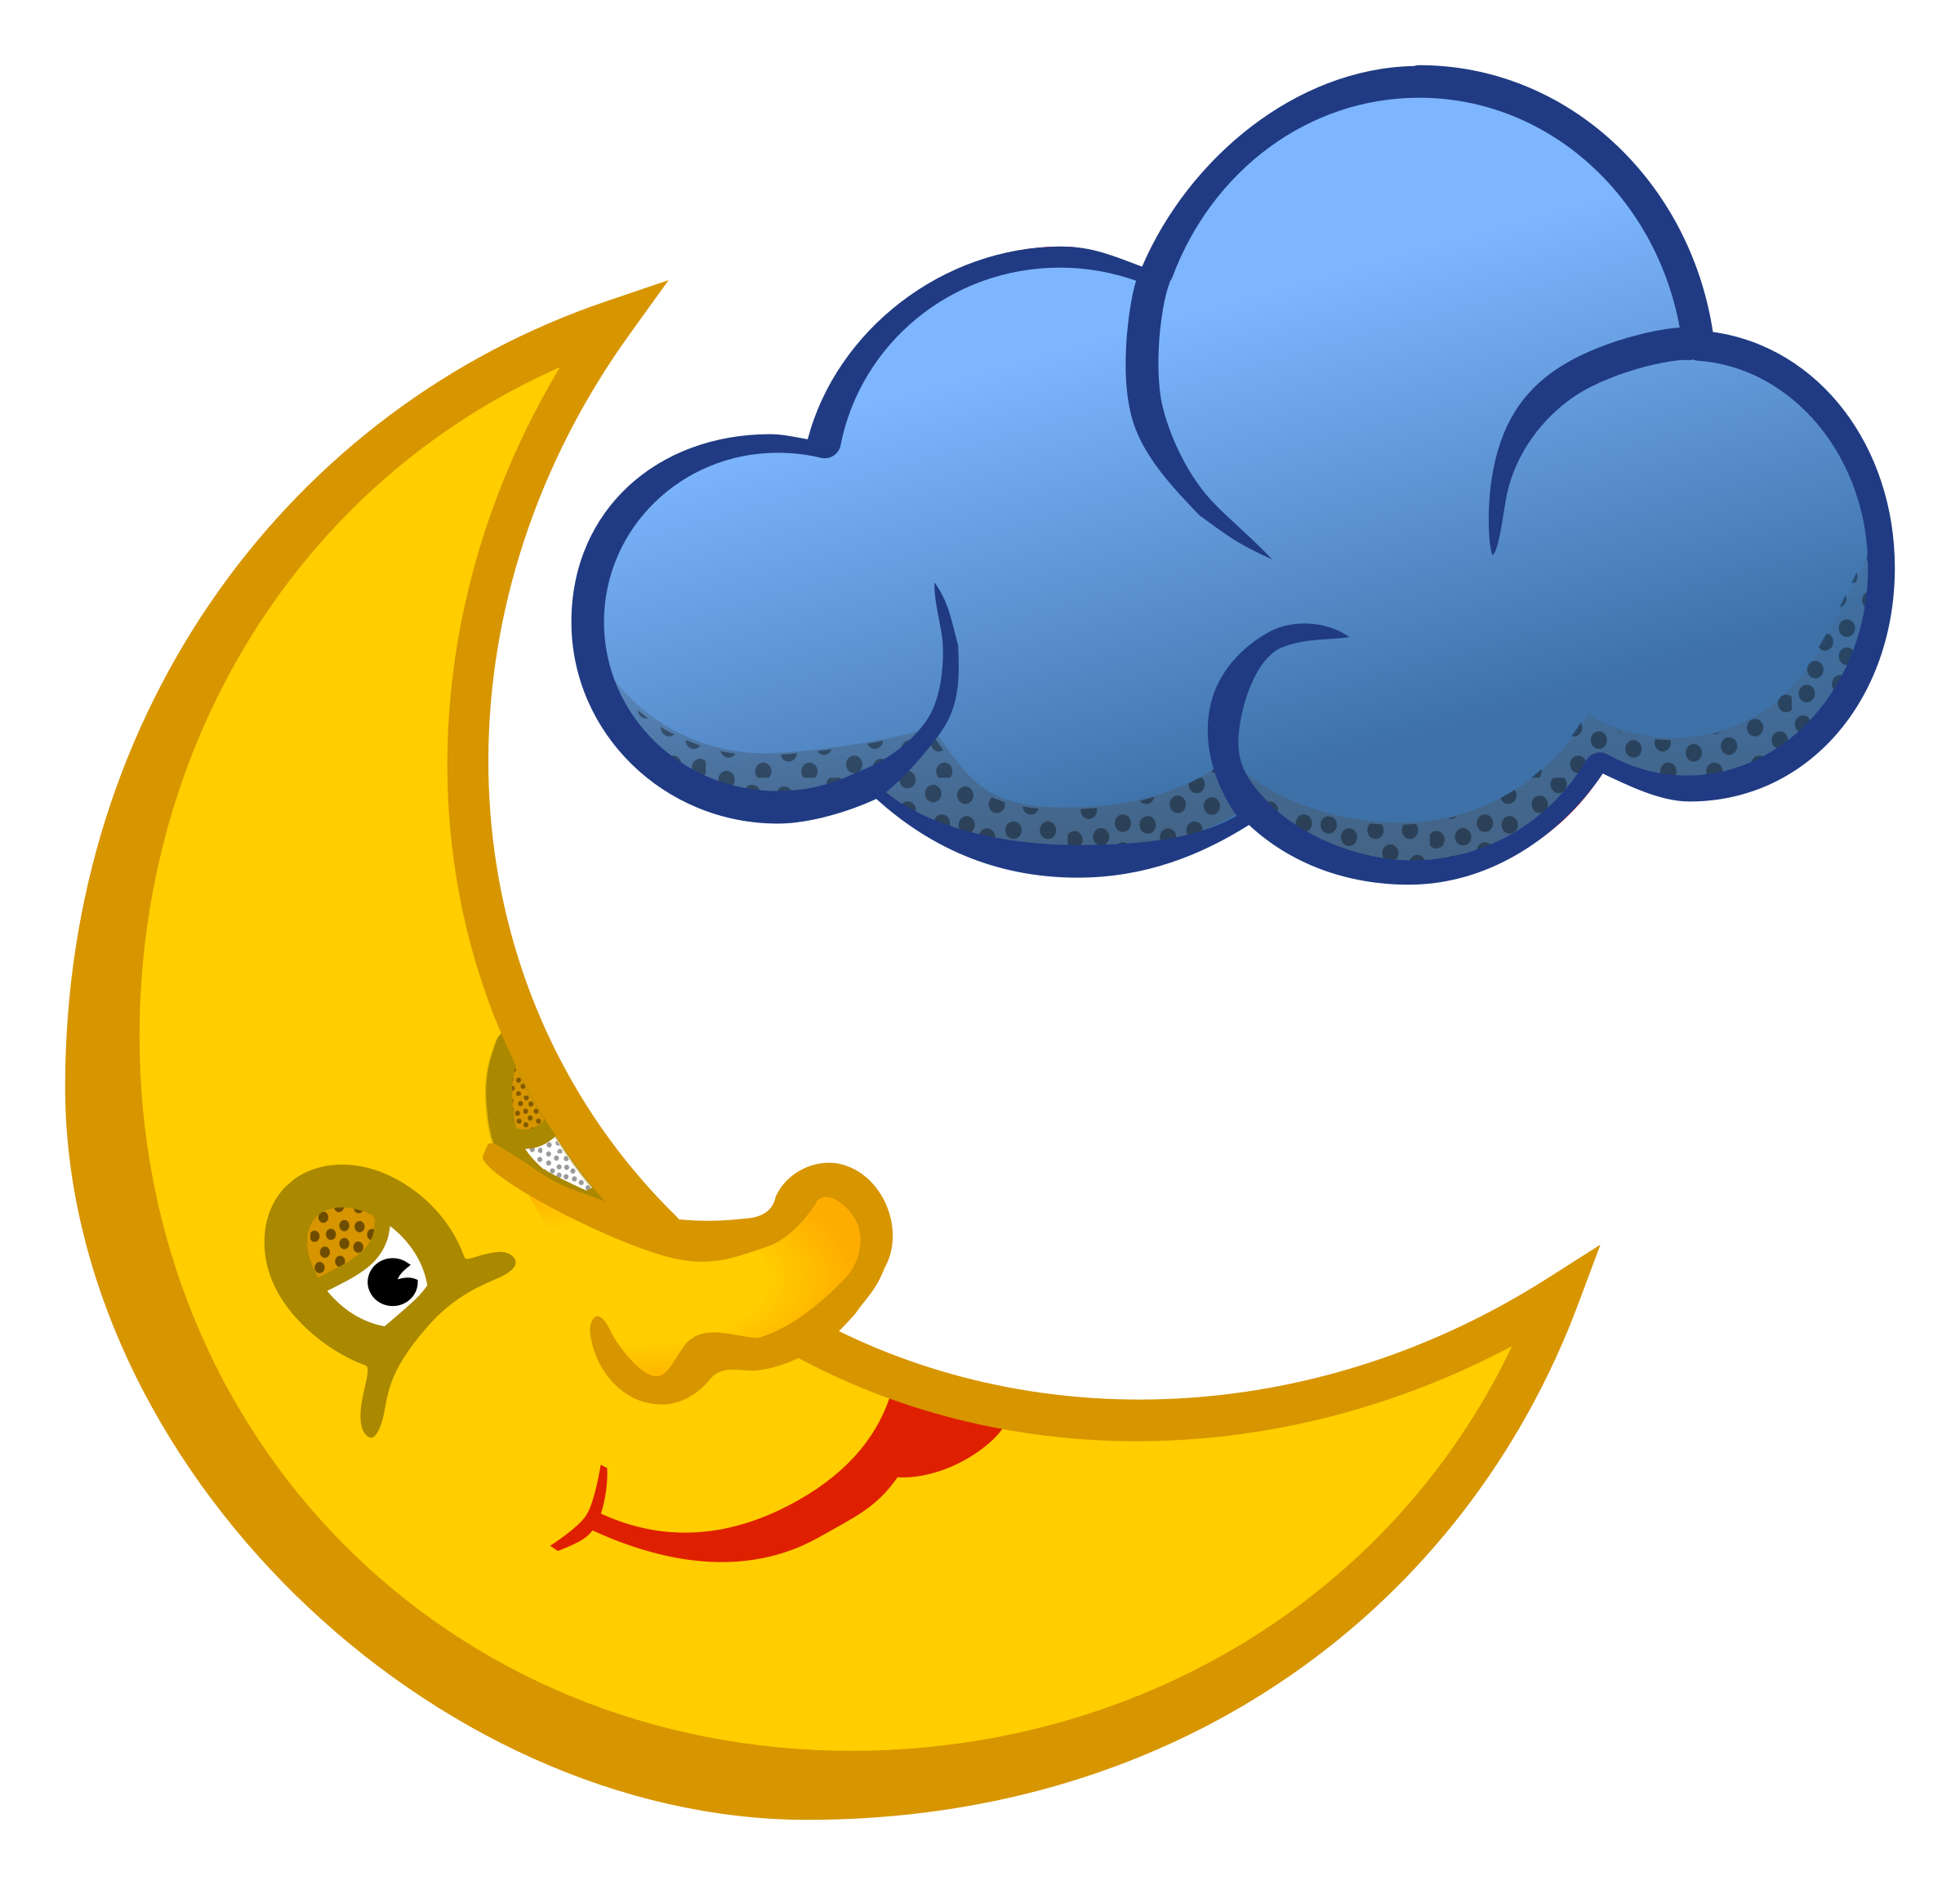 Mond clipart #4, Download drawings